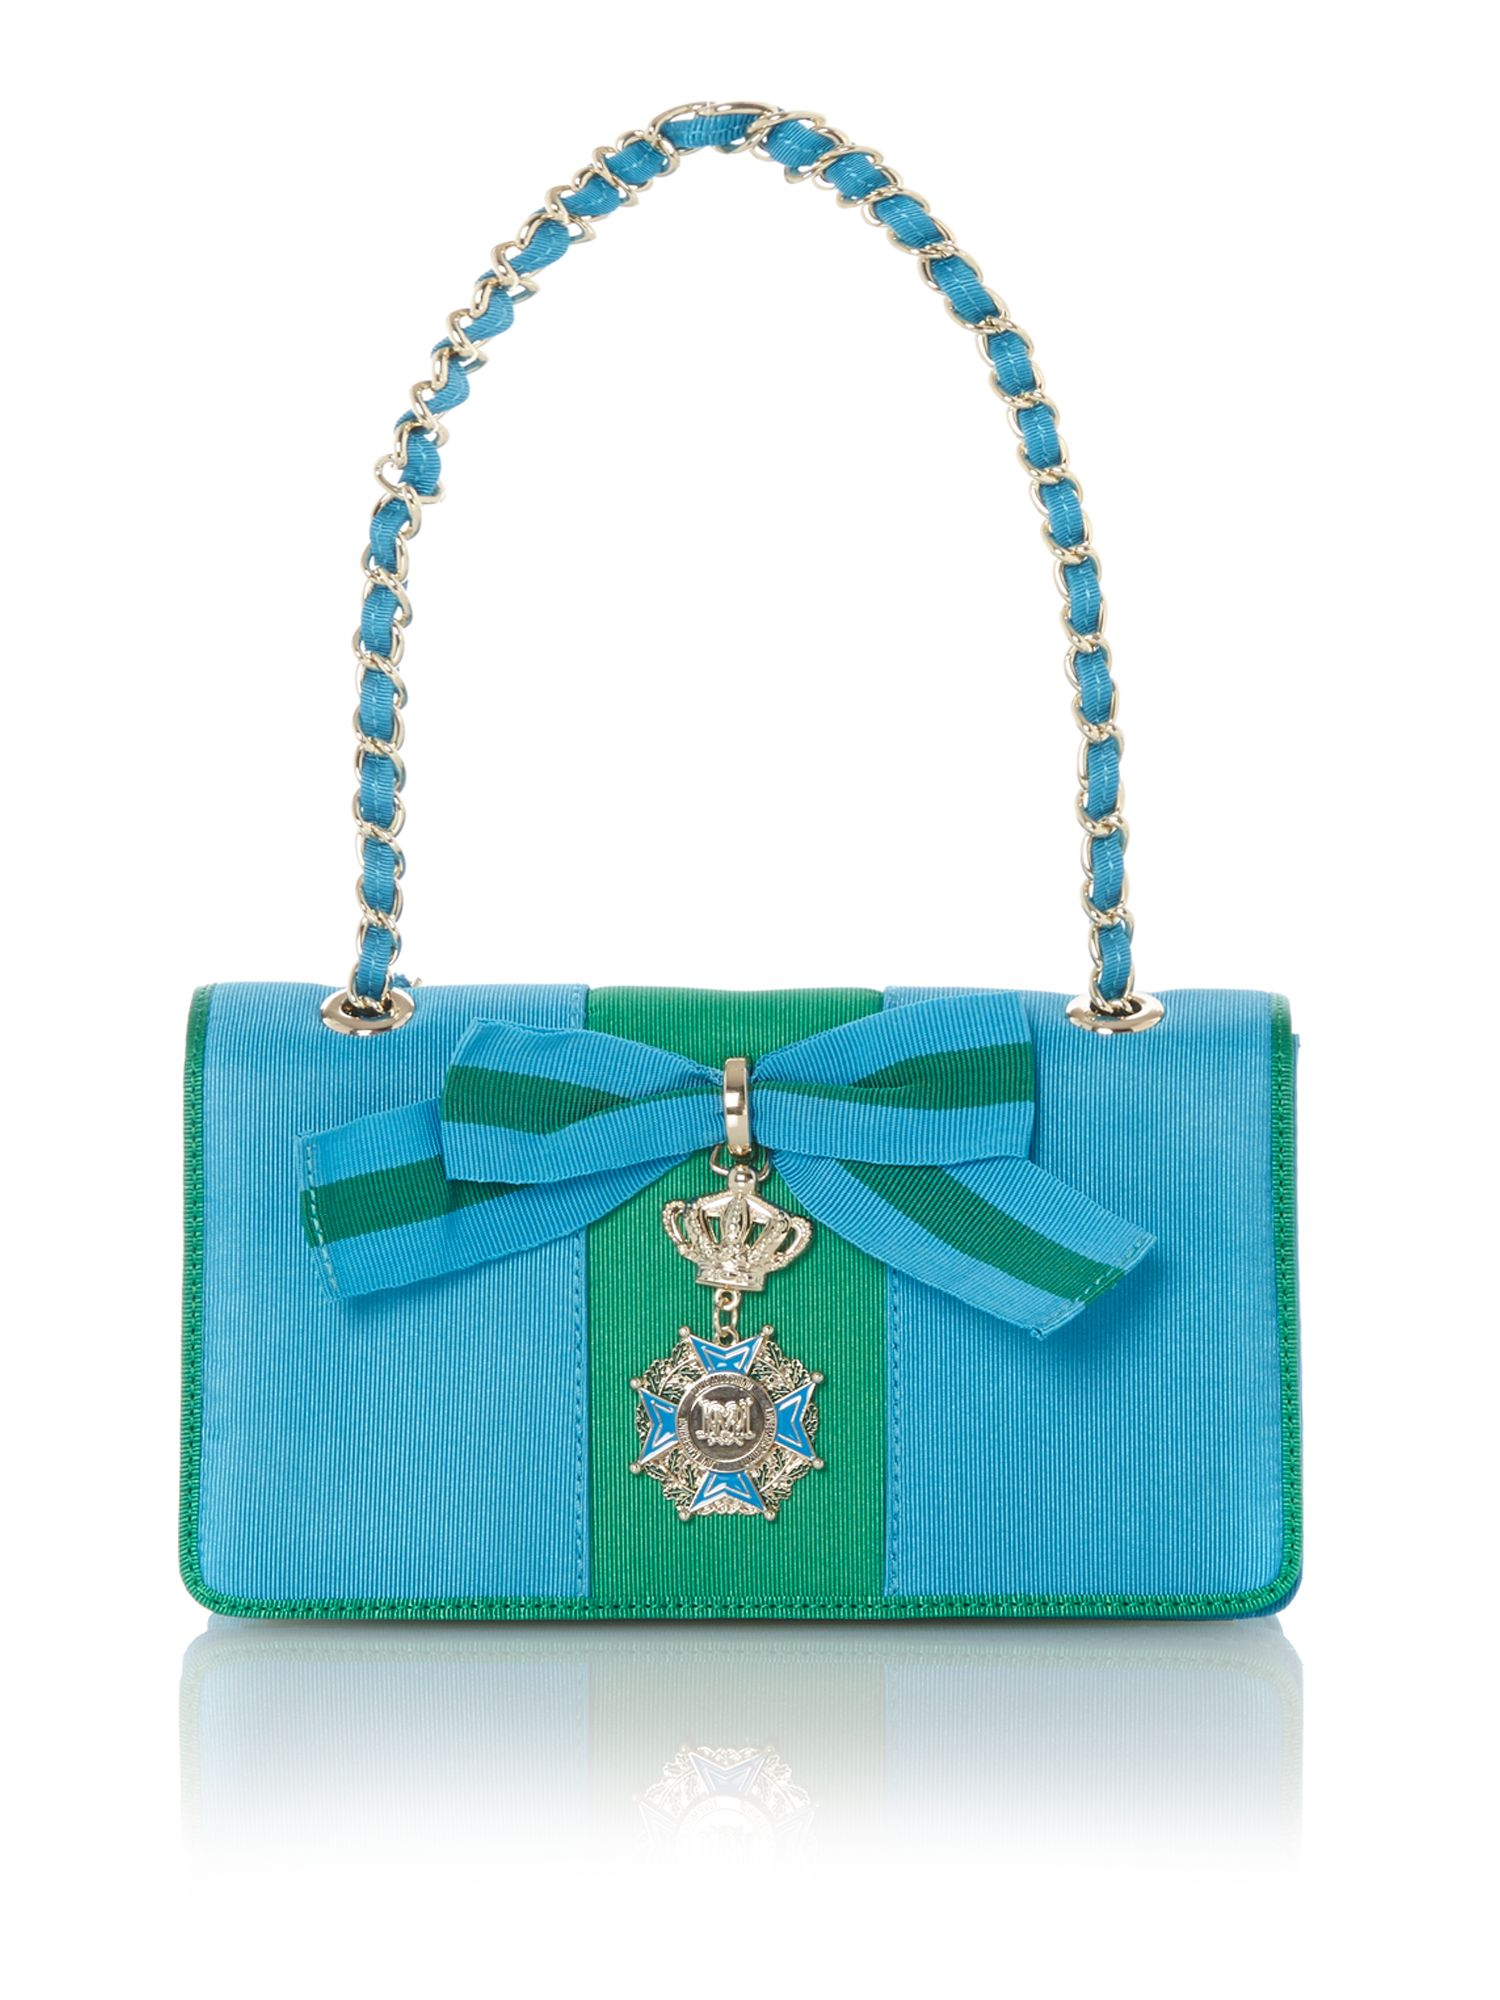 Small green and blue flapover shoulder bag